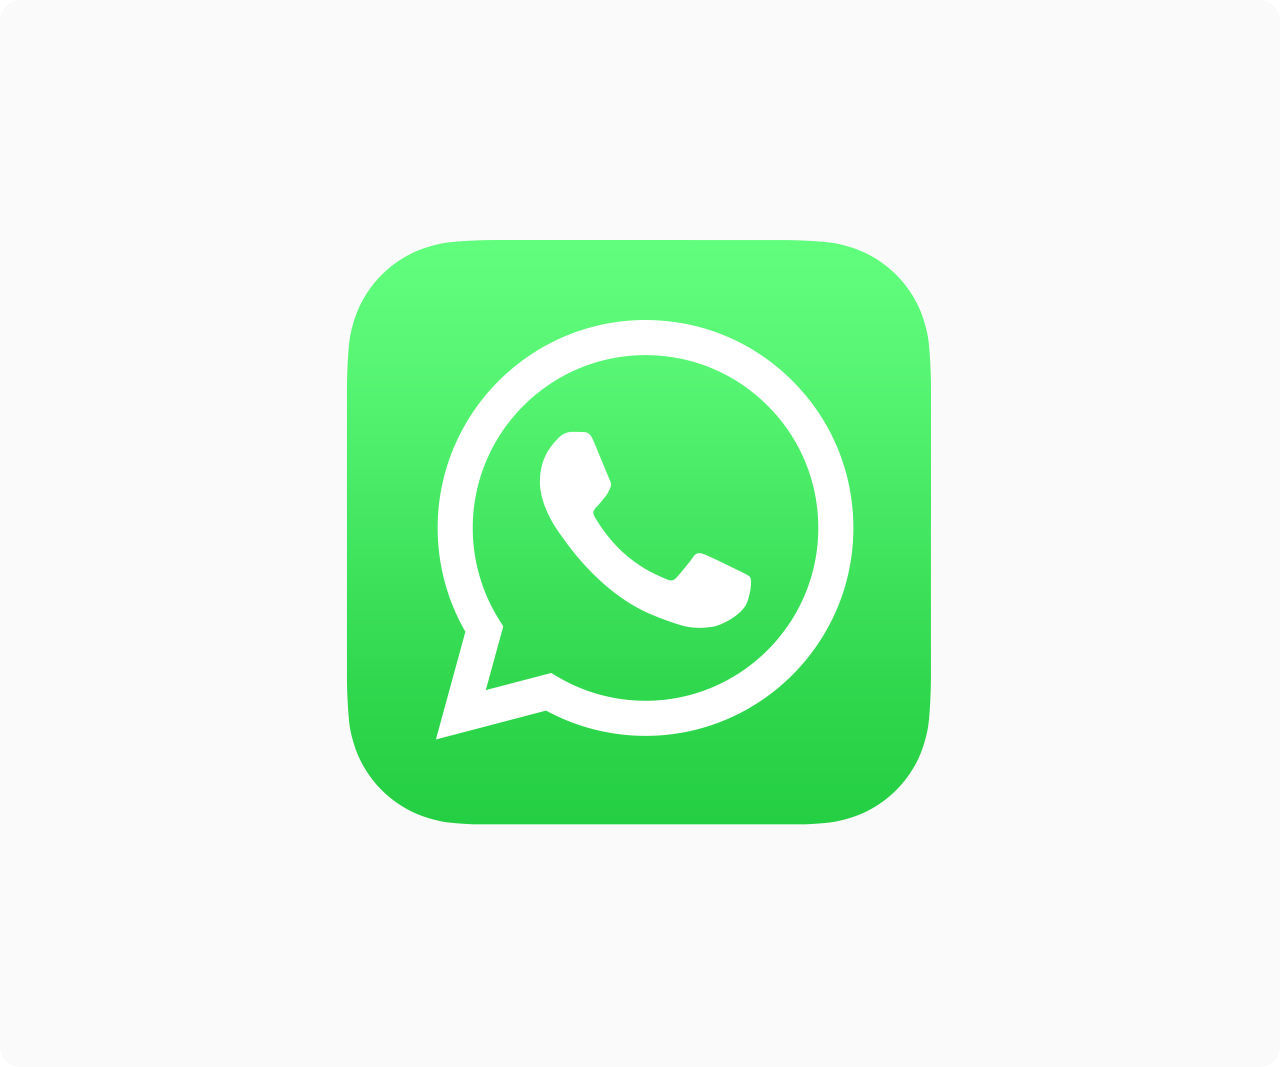 WhatsApp To Stop Working On Millions Of Phones From Friday, January 1